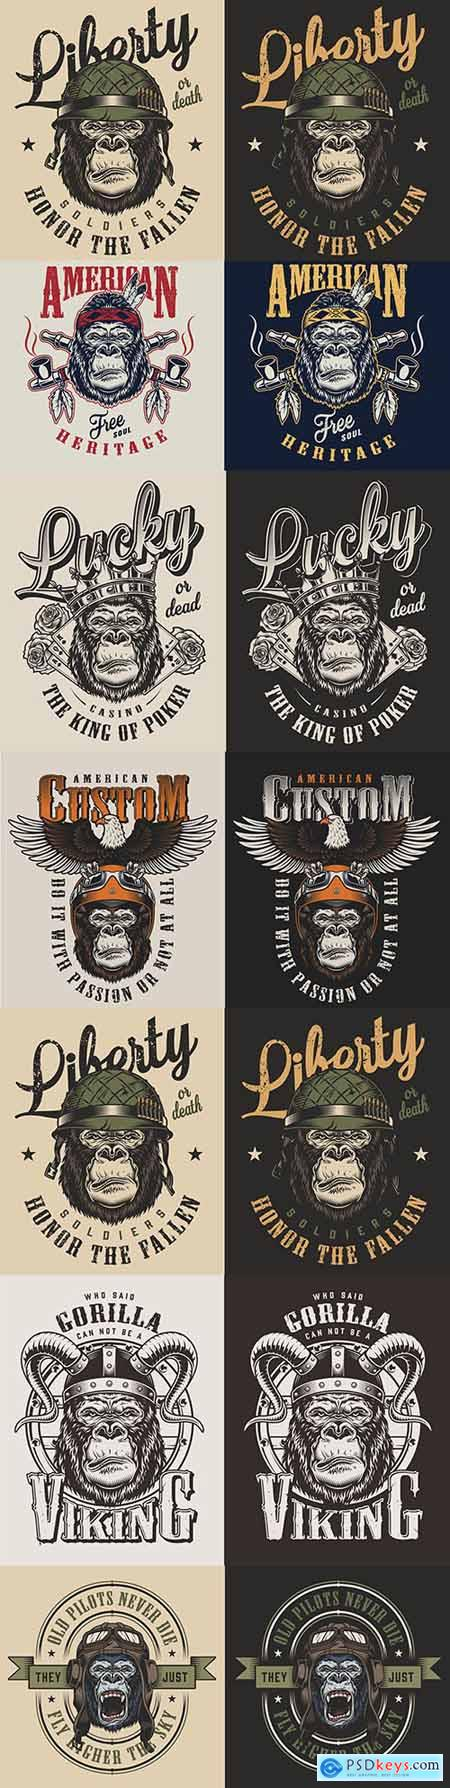 T-shirt with print gorilla vintage style design